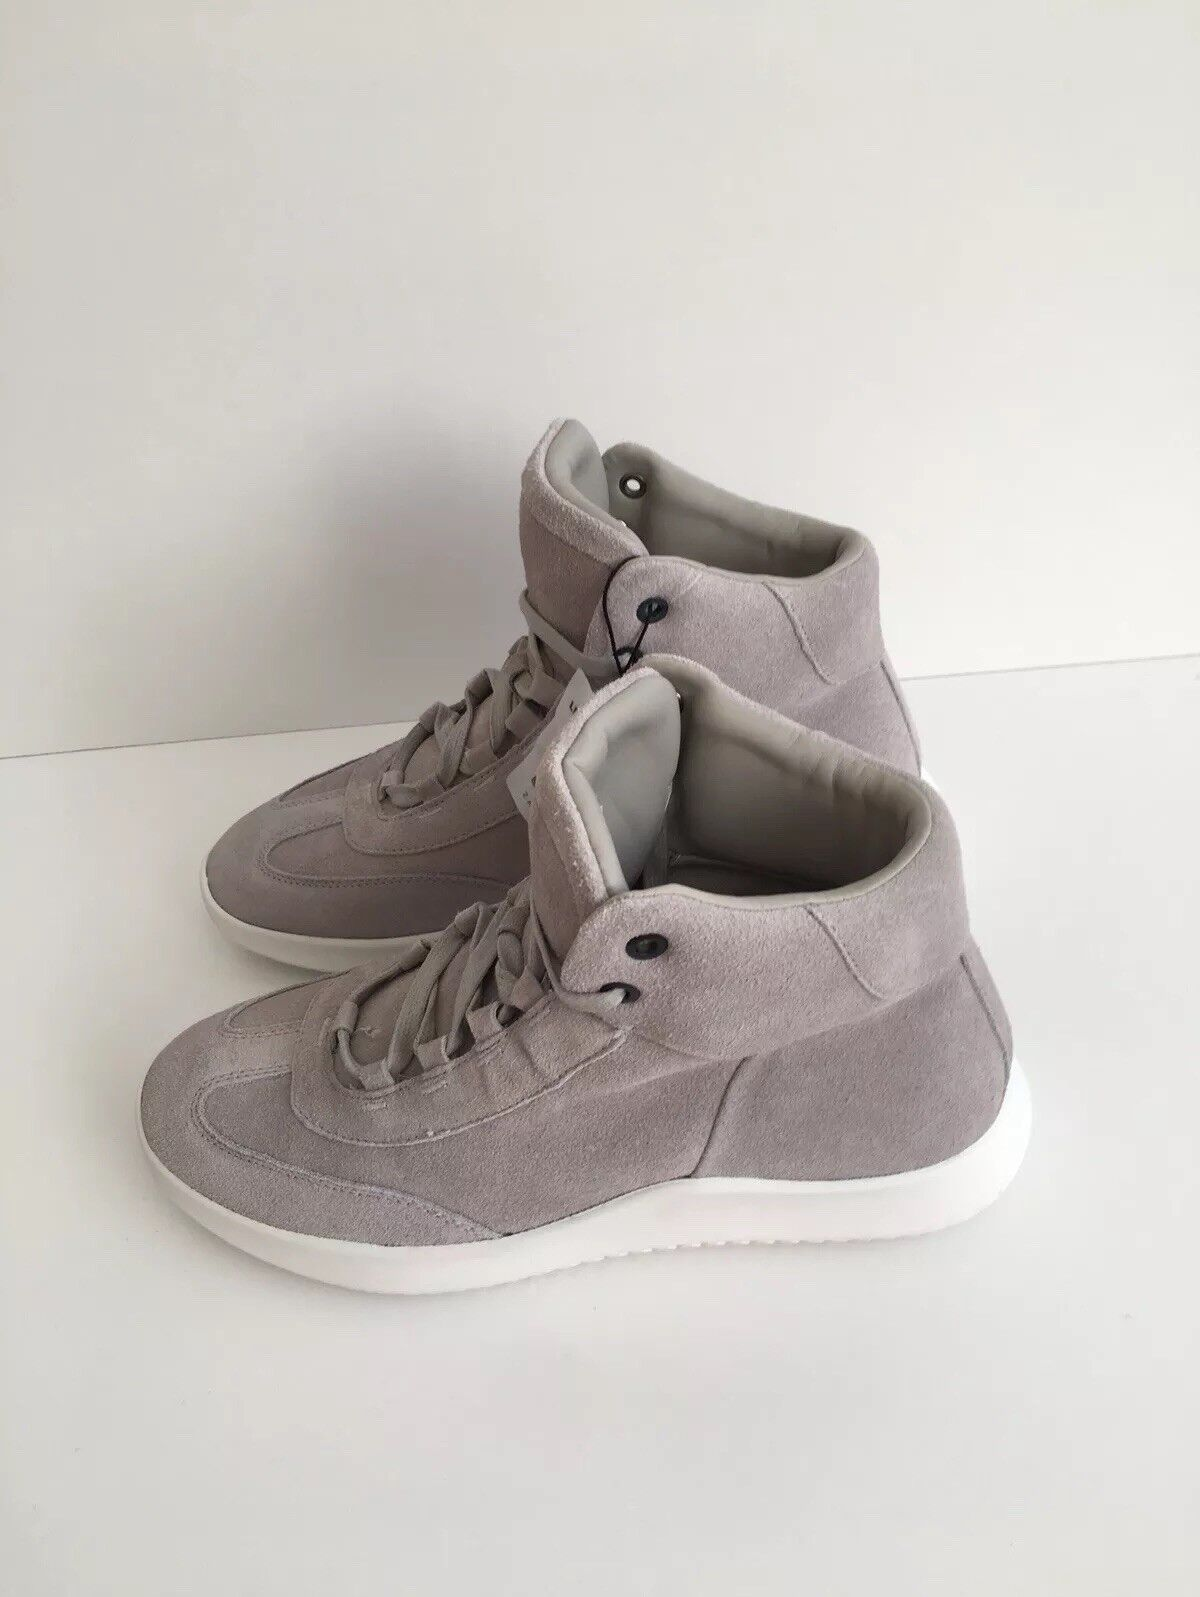 ZARA MAN GREY LEATHER SUEDE FINISH HIGH UK TOP SNEAKERS TRAINERS SIZE UK HIGH 9 BNWT NEW 5bca12